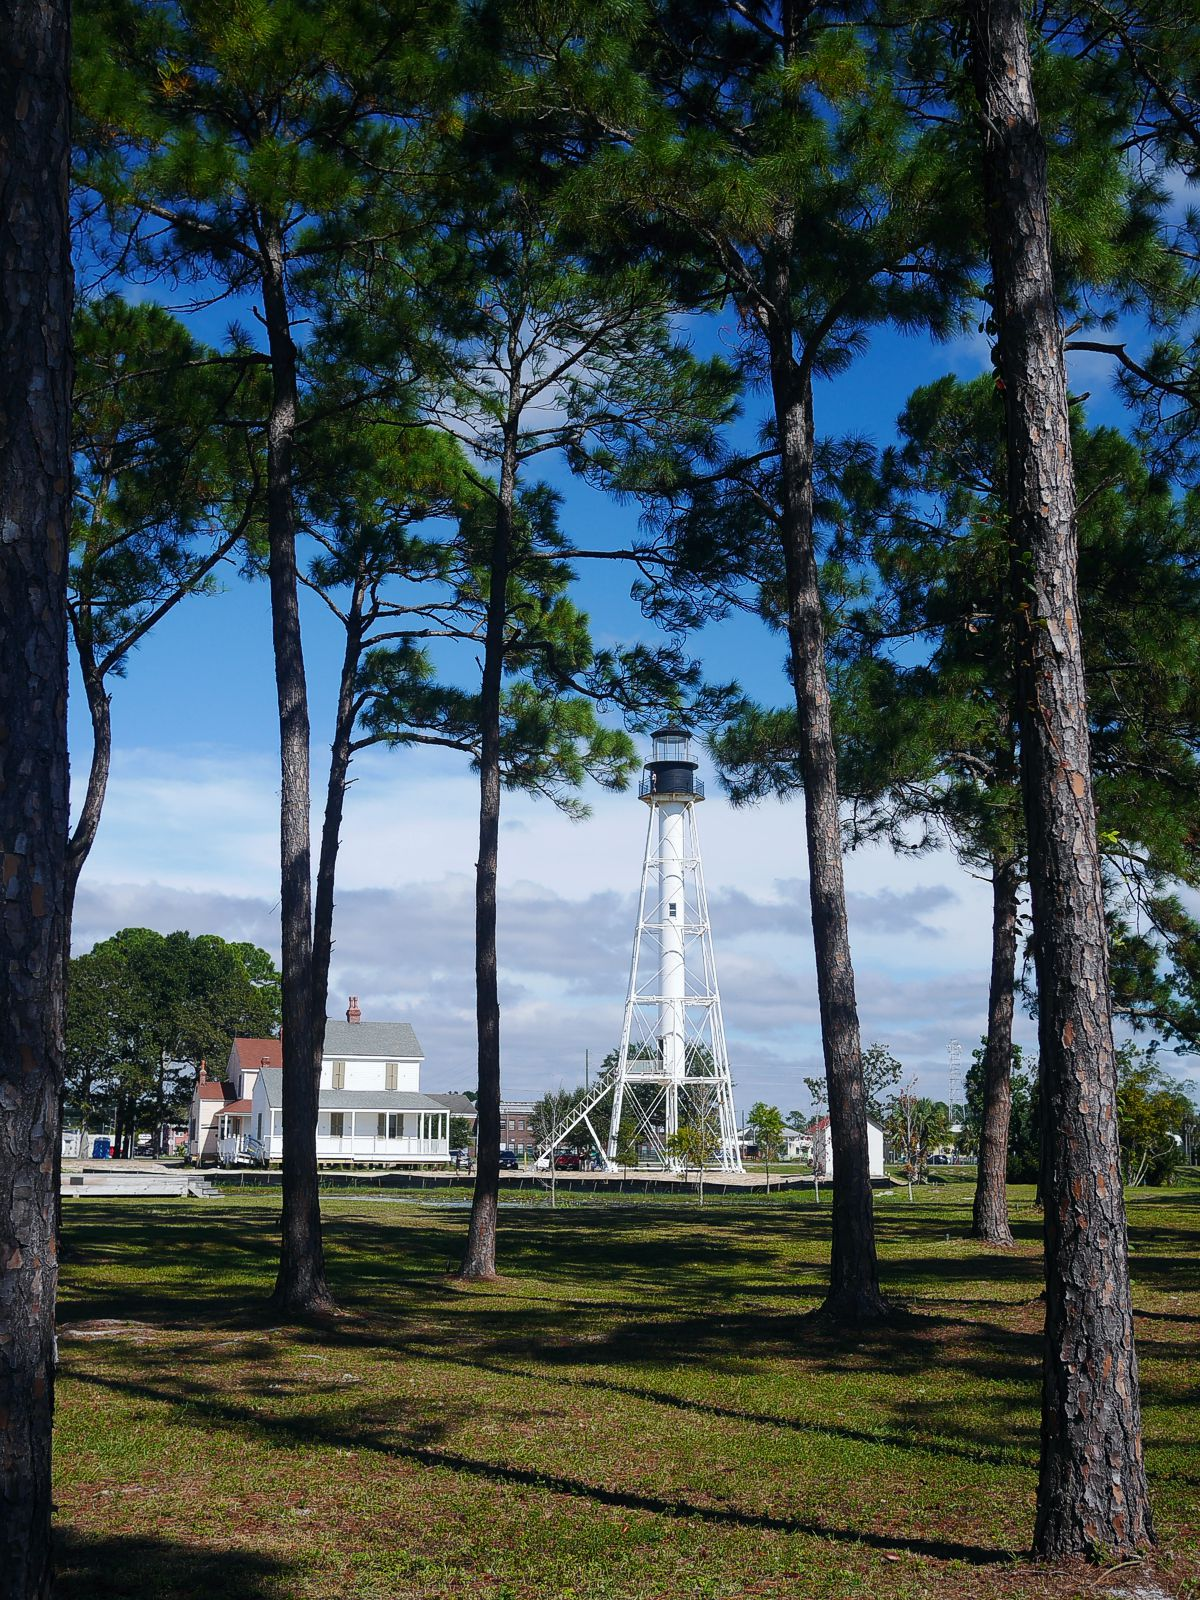 Cape San Blas Lighthouse in George Core Park located in Lighthouse Park in downtown Port St. Joe